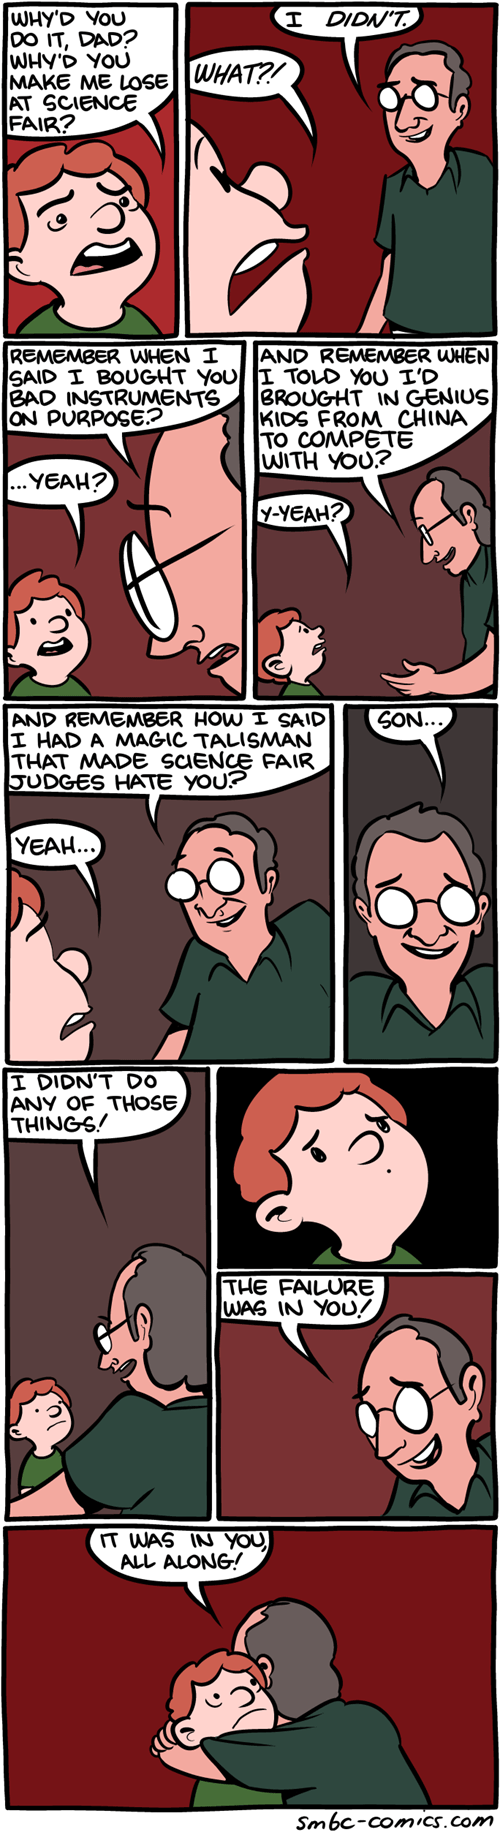 dads,failure,school,kids,science,web comics